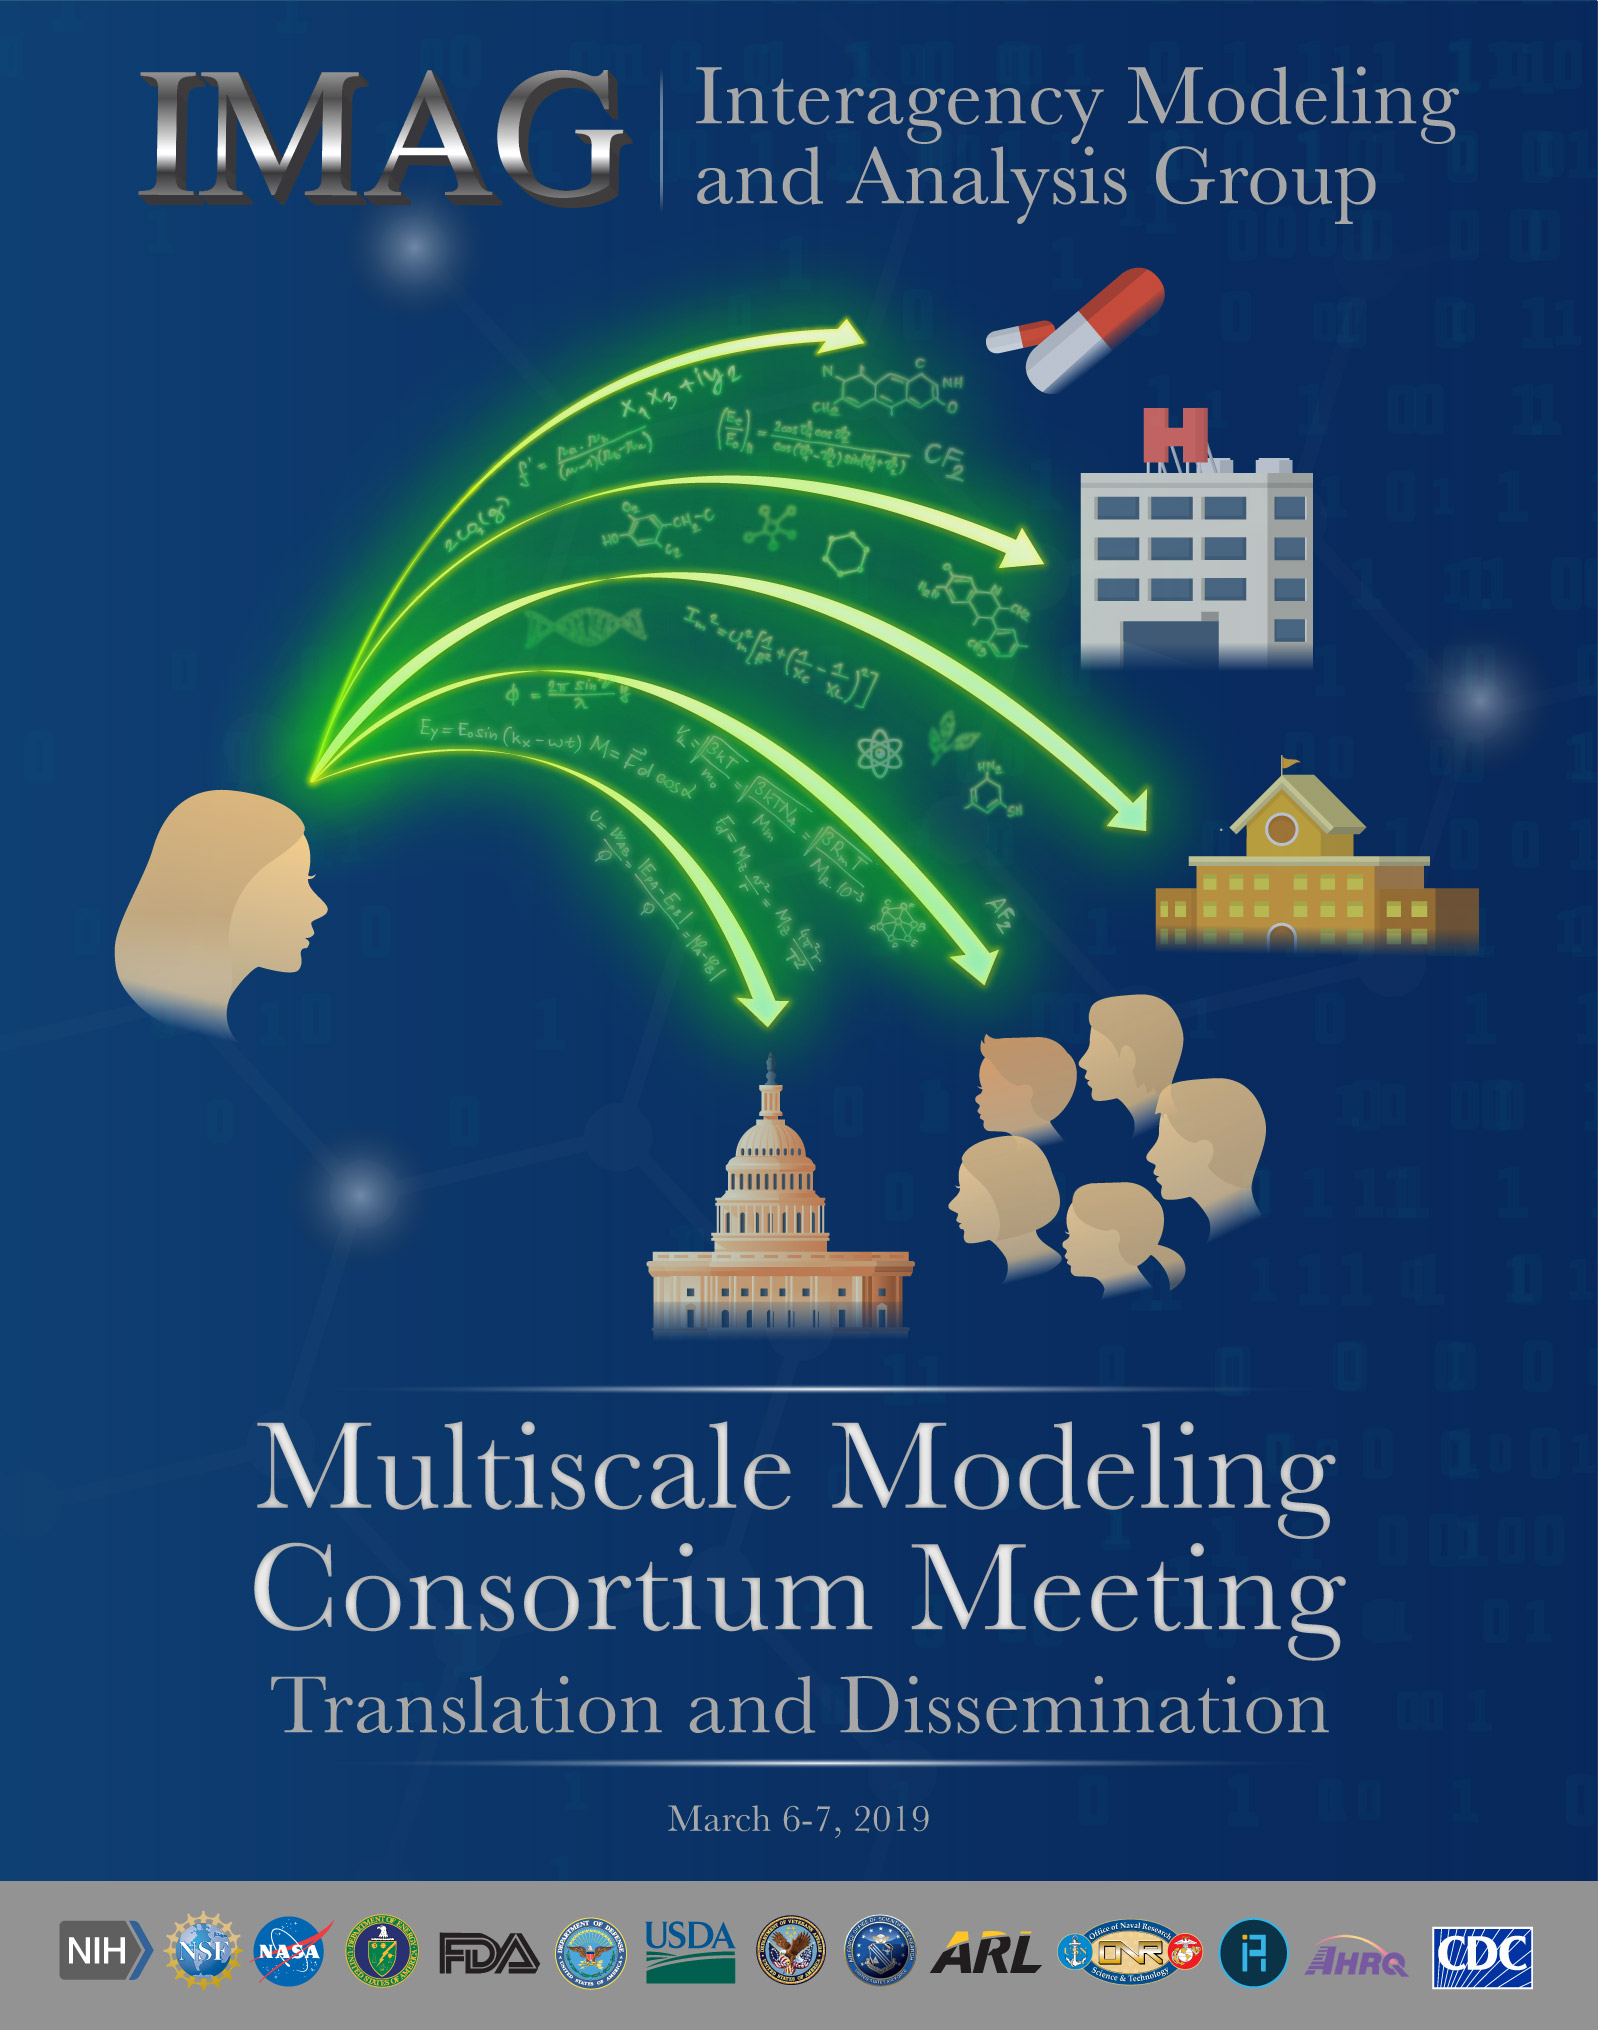 poster of 2019 Multiscale Modeling Consortium Meeting